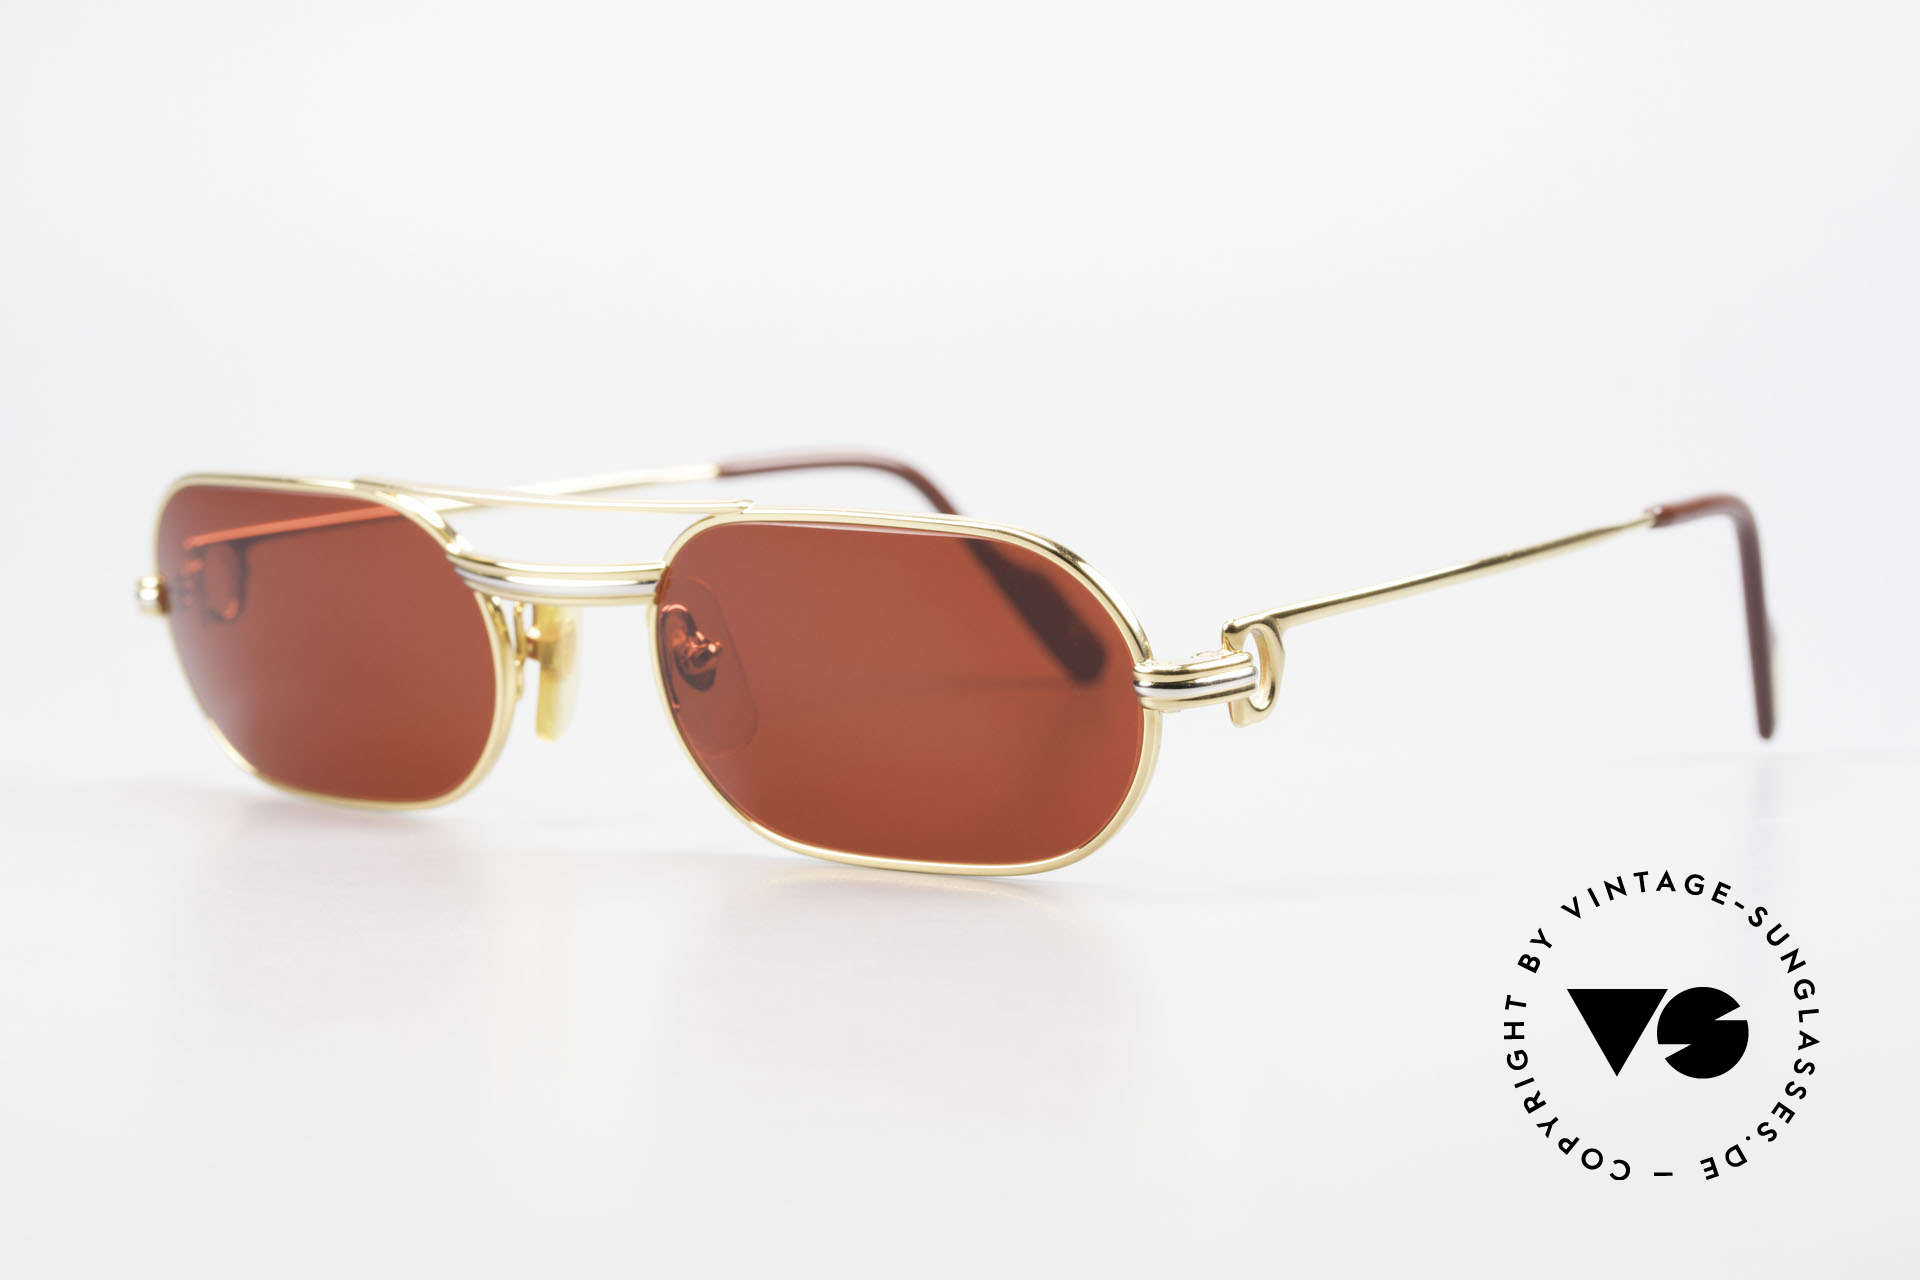 Cartier MUST LC - S 3D Red Luxury Sunglasses, 22ct gold-plated frame (like all old Cartier originals), Made for Men and Women